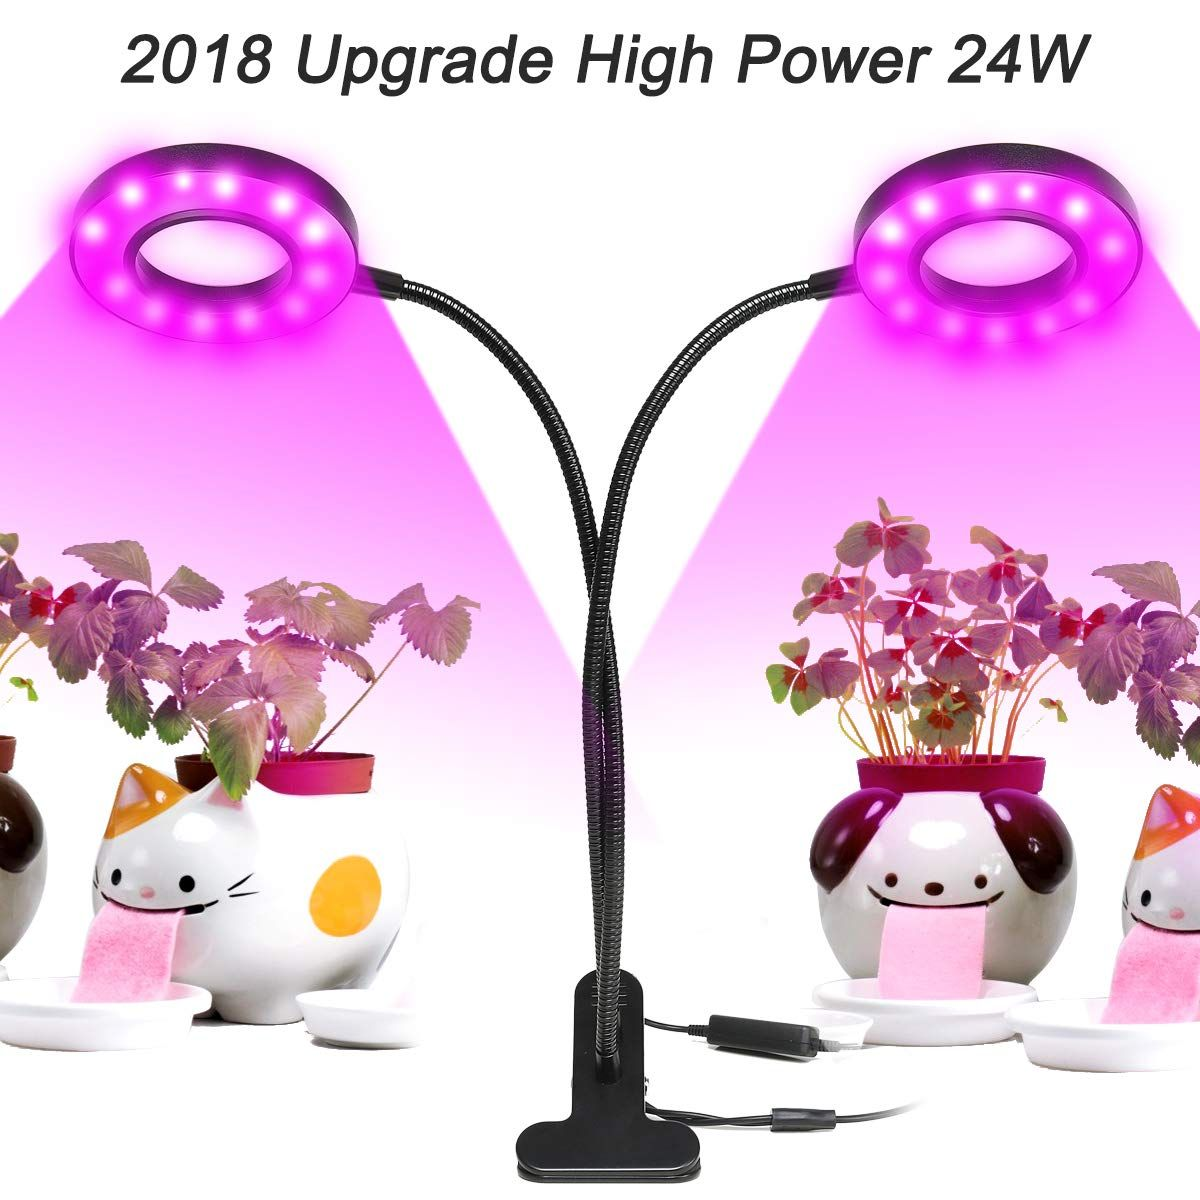 Dual Led Grow Light Desk Lamp 24w 48 Leds Dimmable 5 Levels Plant Lamp With Adjustable 360 Degree Goosenecka Grow Lights For Plants Led Grow Lights Grow Lights